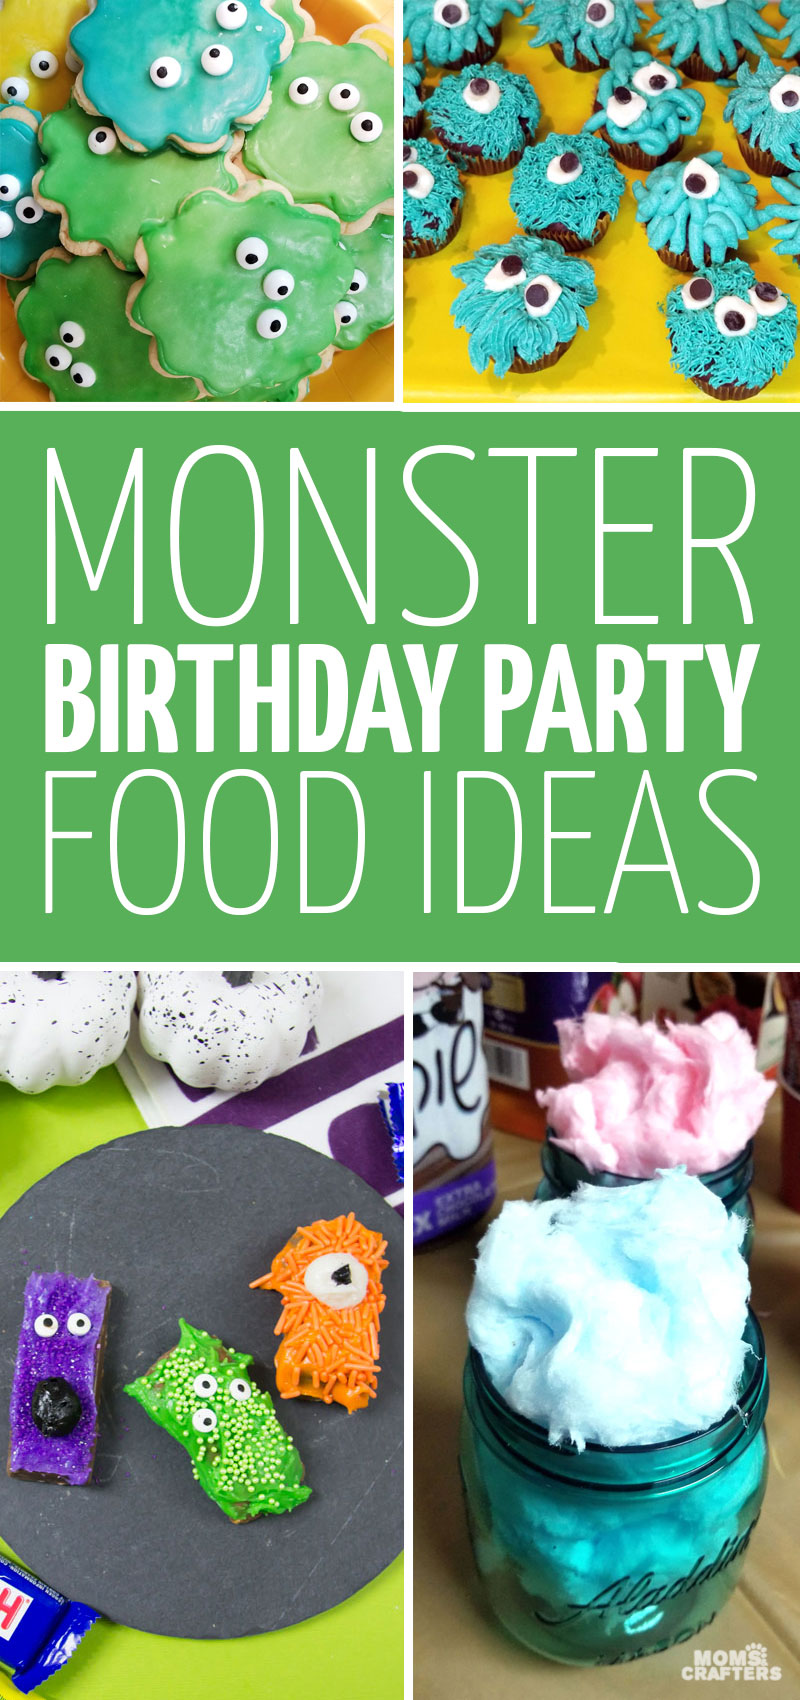 Click for some cool monster birthday party food ideas - perfect for a first, second, third, or fourth birthday theme!